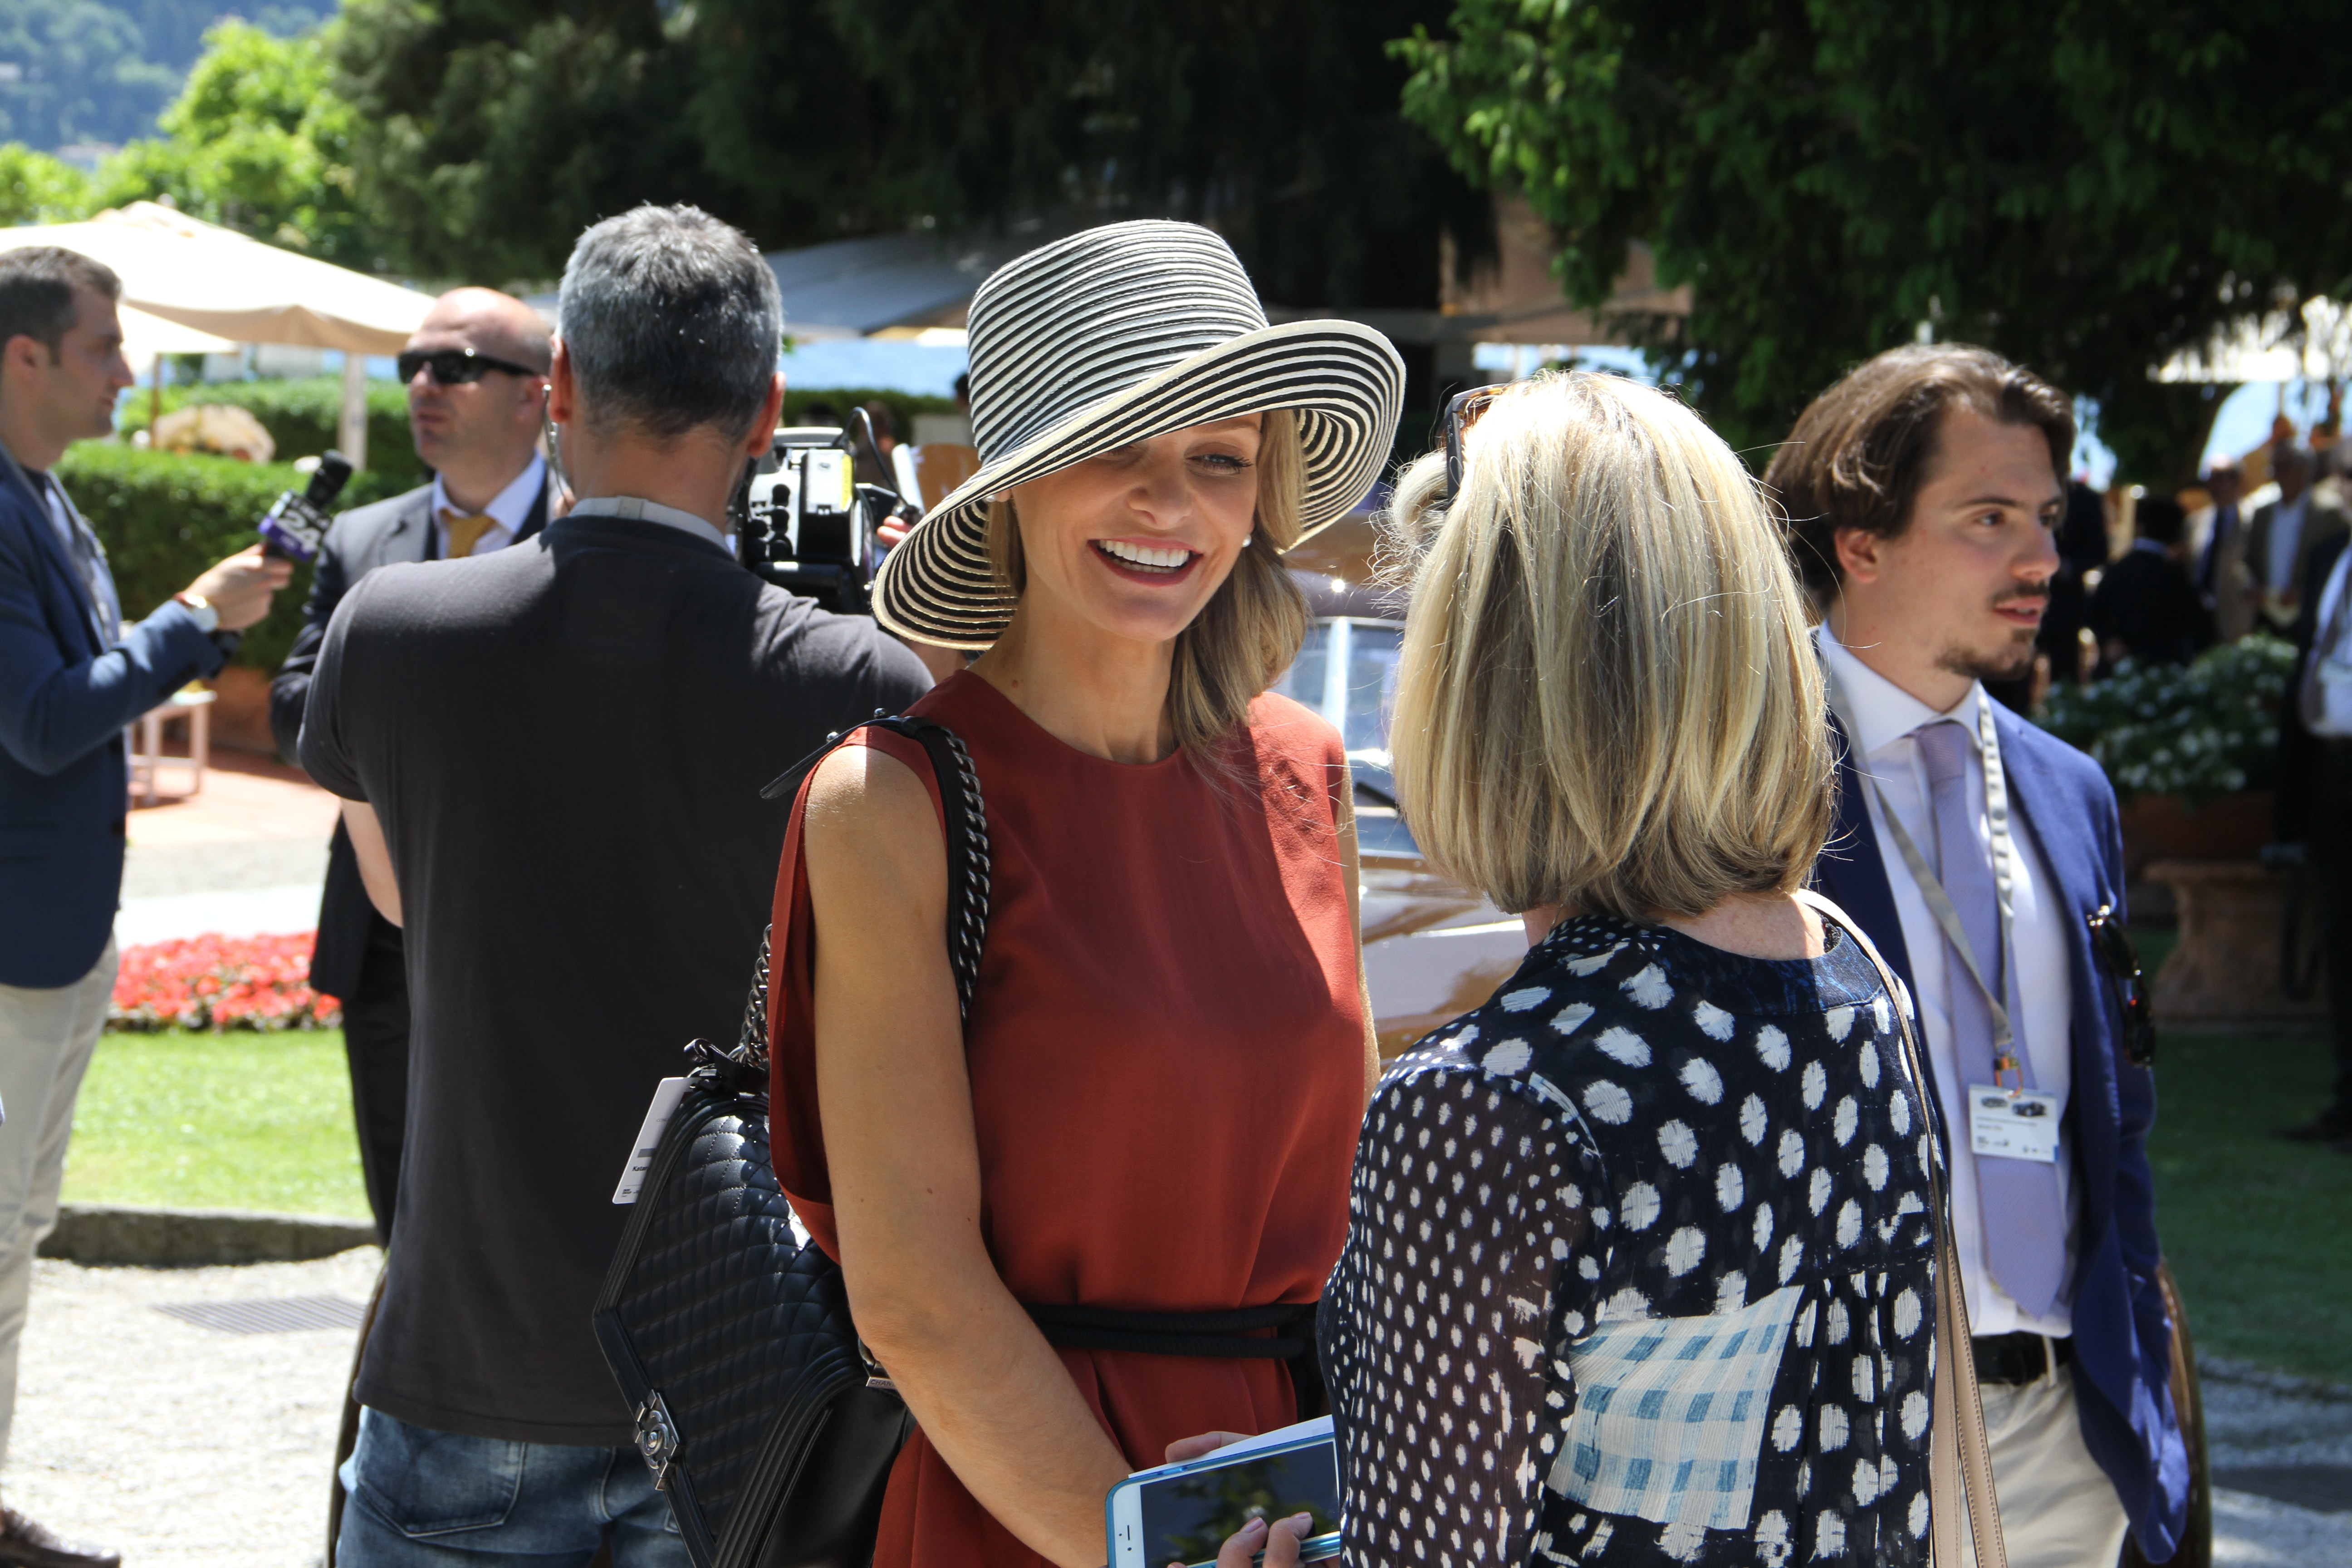 Photo Report: Watch And Car Spotting At The 2016 Concorso d'Eleganza Villa d'Este With A. Lange & Söhne Photo Report: Watch And Car Spotting At The 2016 Concorso d'Eleganza Villa d'Este With A. Lange & Söhne IMG 5199